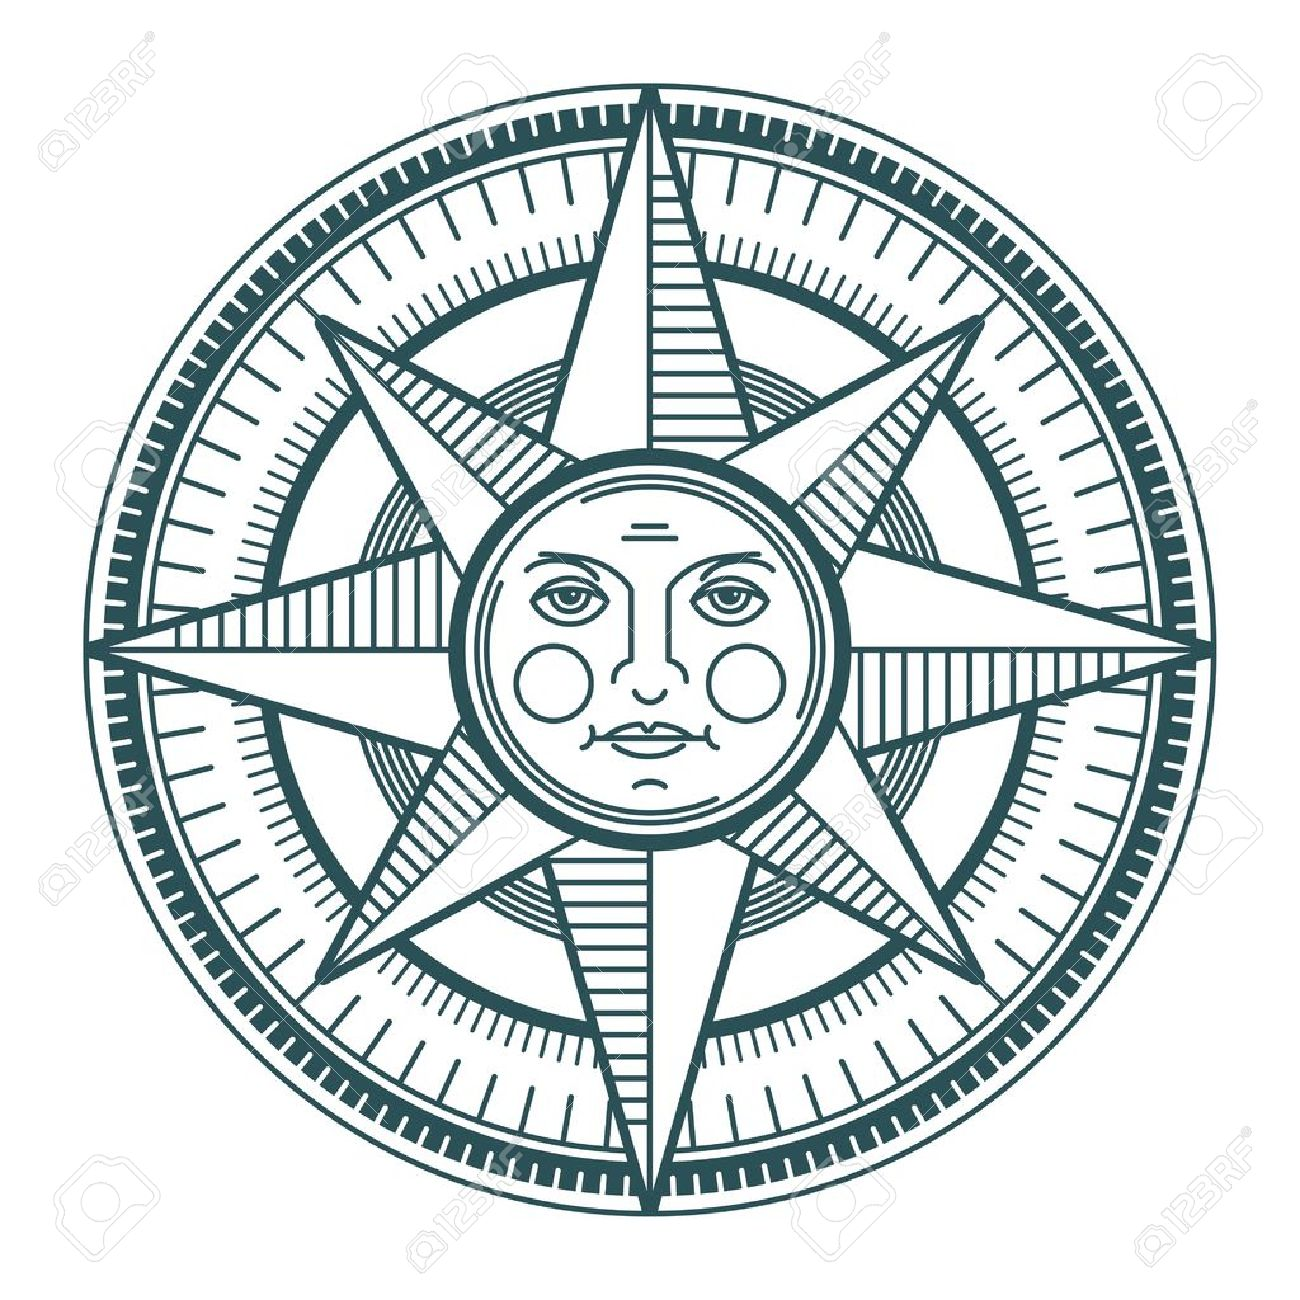 15314085-Vintage-sun-compass-rose-Stock-Vector.jpg